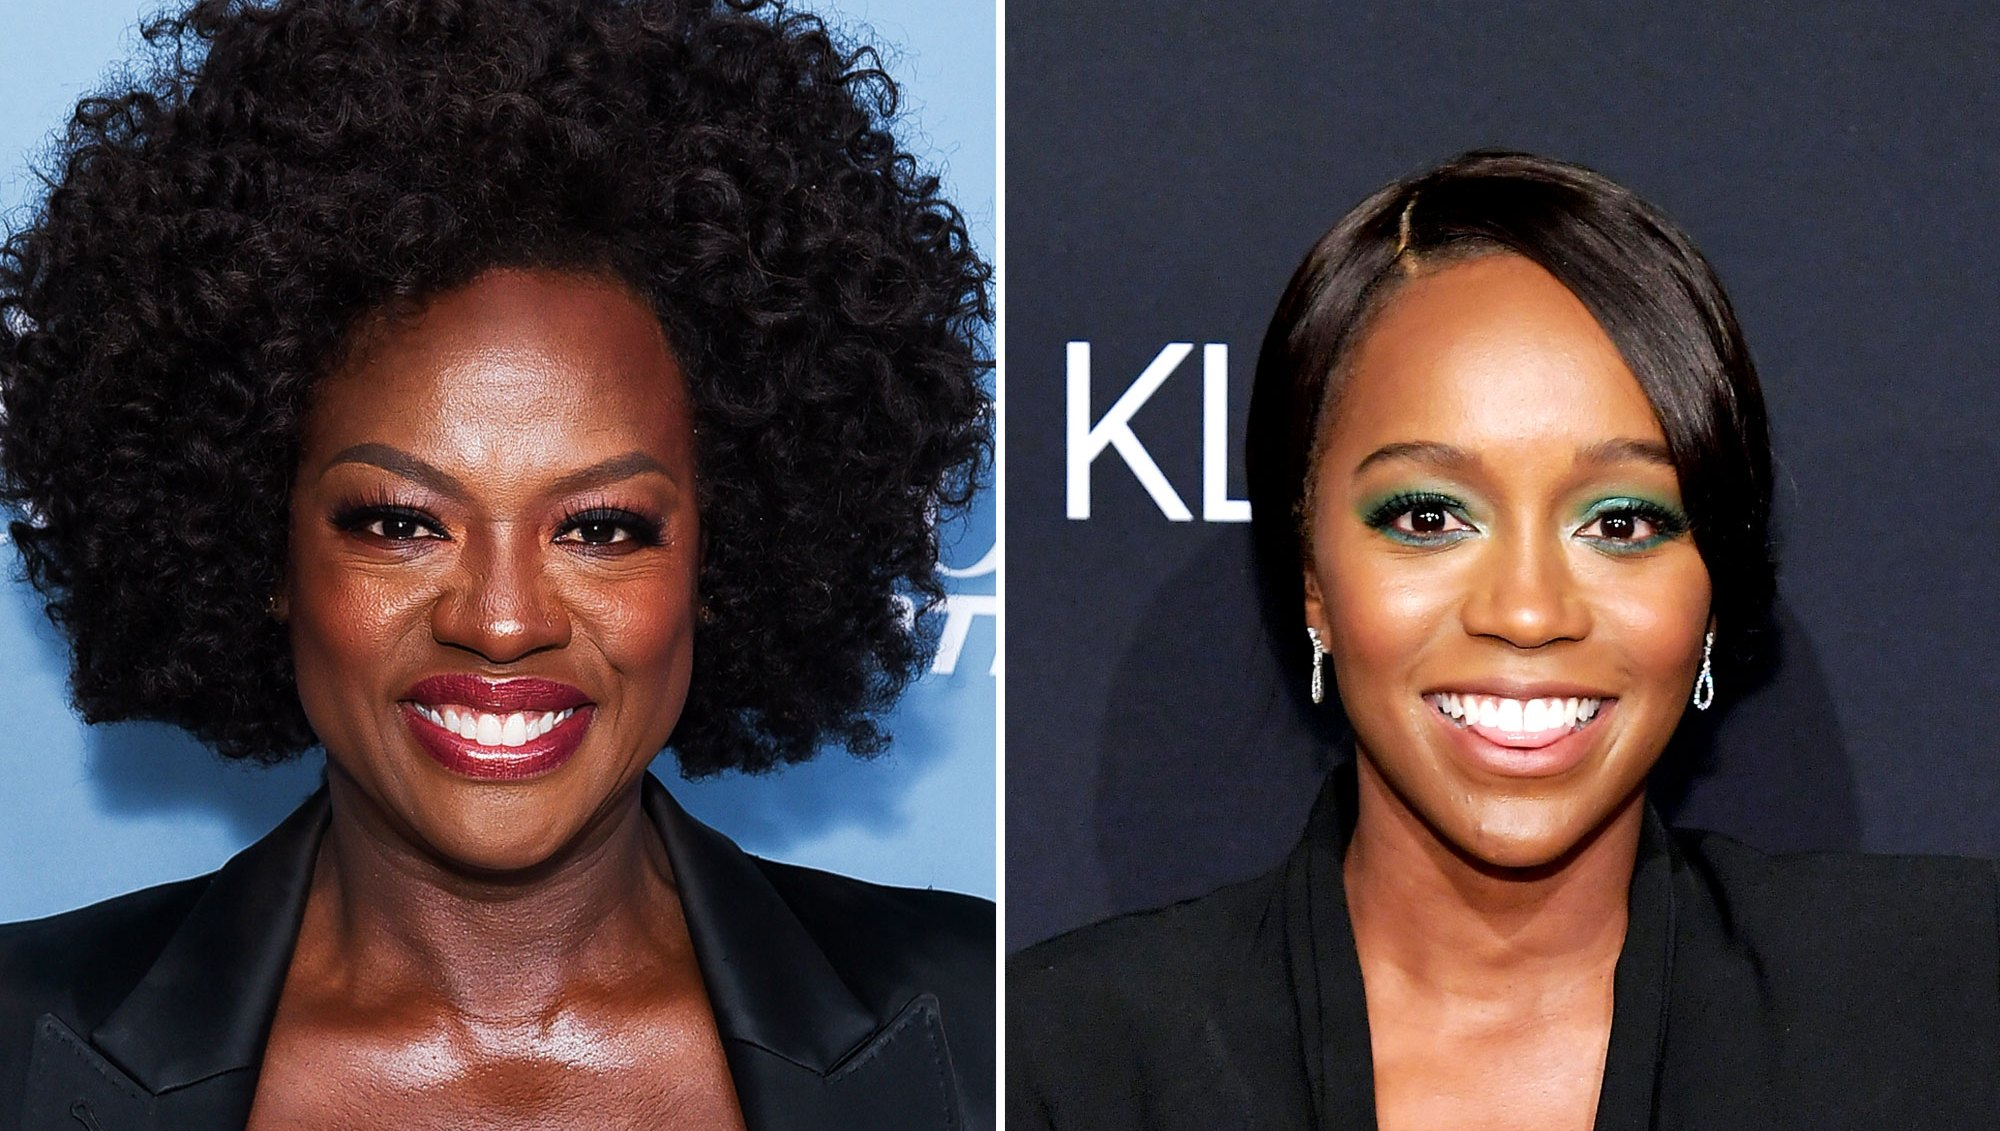 Viola Davis and Aja Naomi King